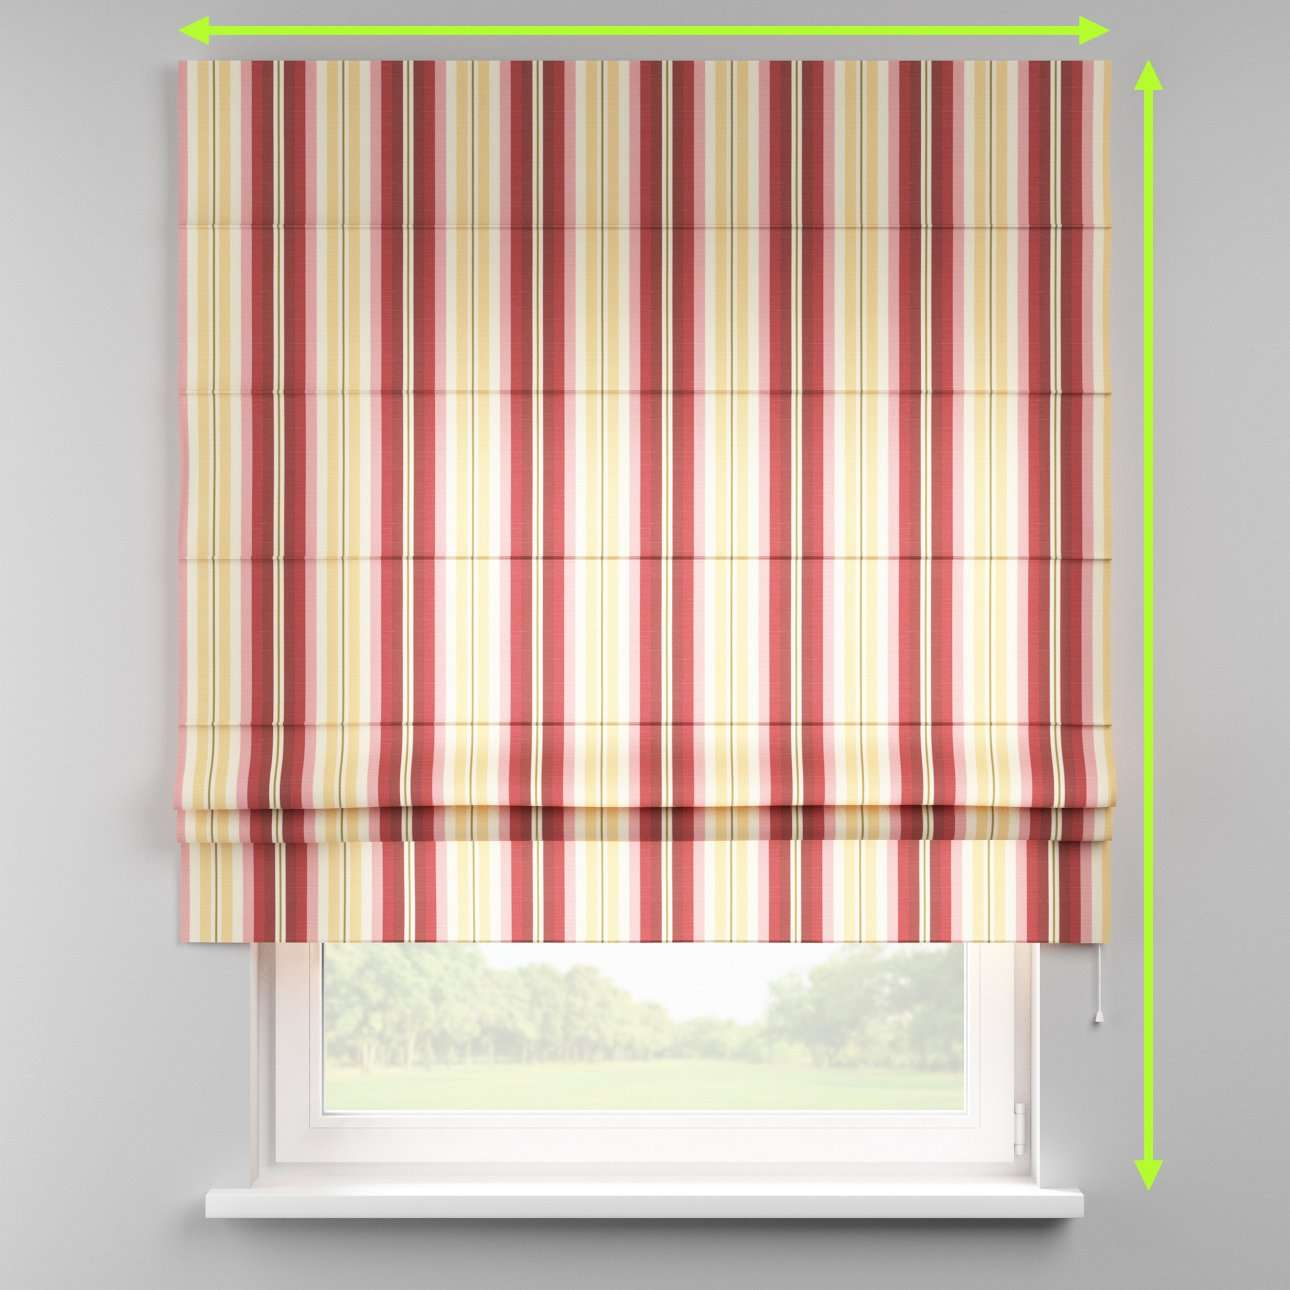 Padva roman blind  in collection Mirella, fabric: 141-12